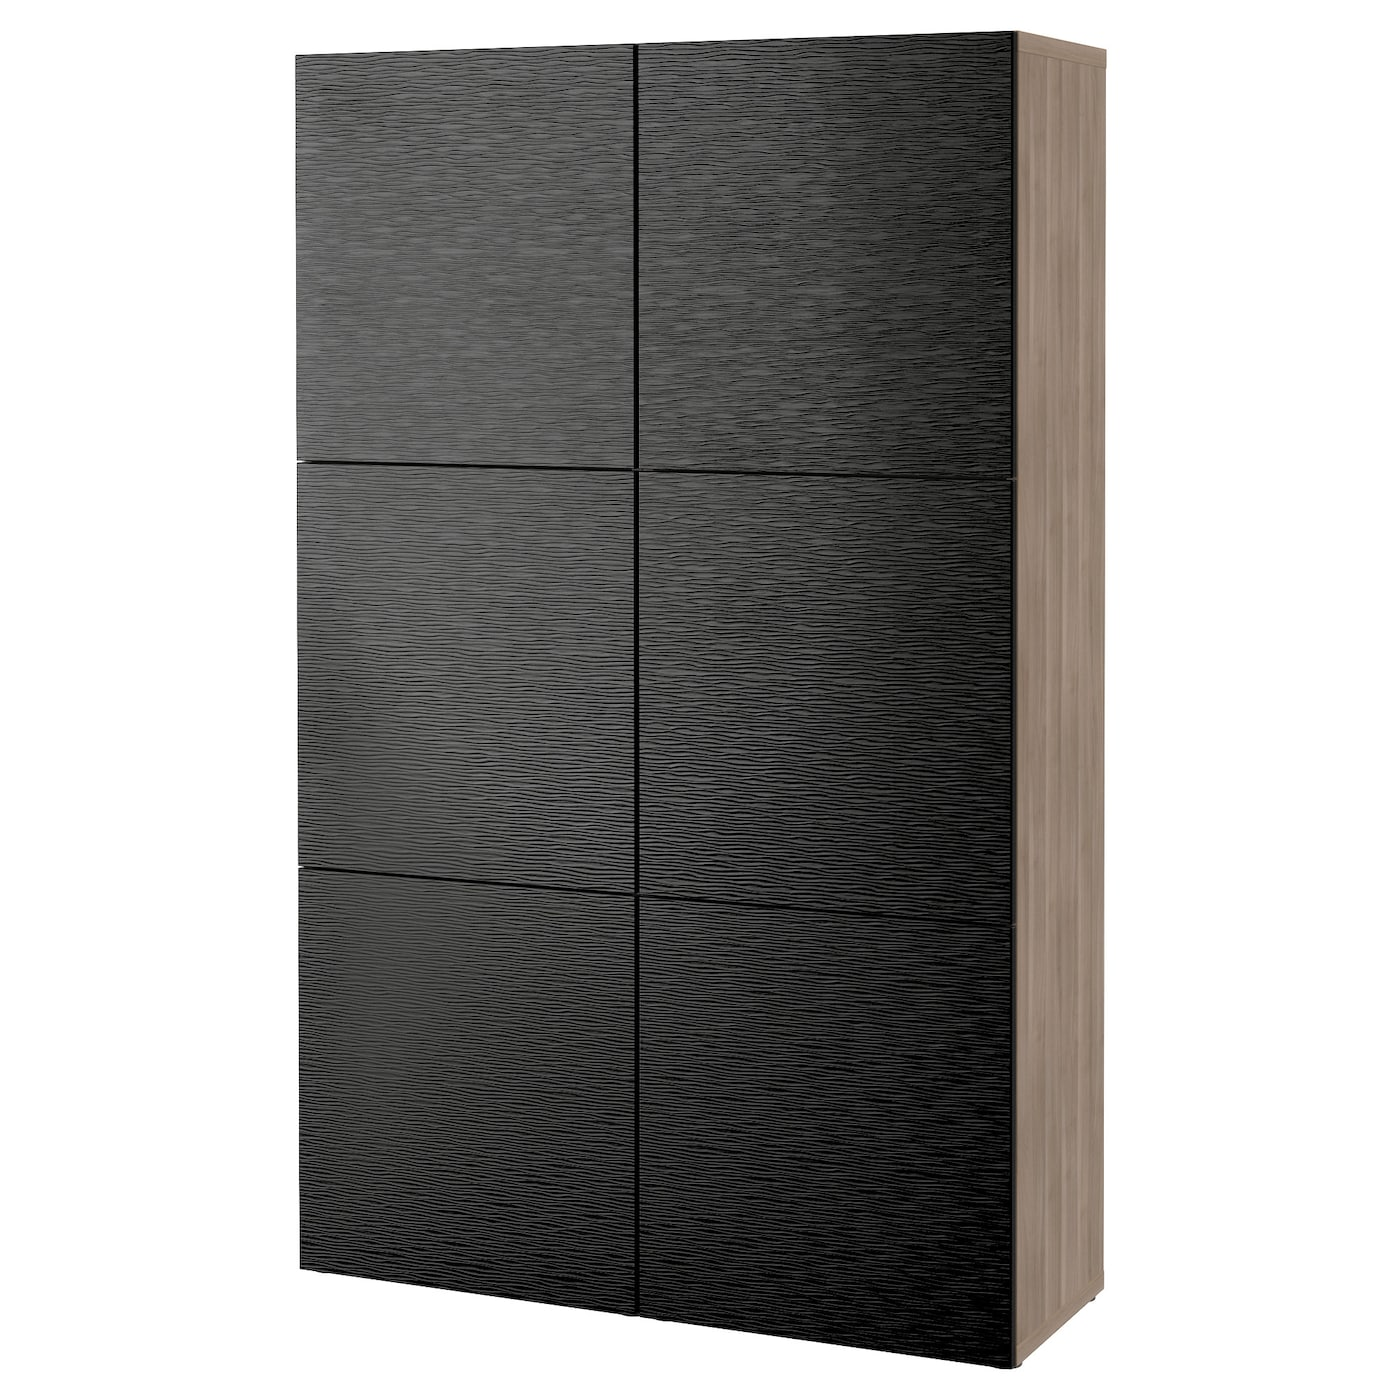 plissee ohne bohren ikea ikea jalousie lupin naturholz braun x cm fensterdeko neu with plissee. Black Bedroom Furniture Sets. Home Design Ideas